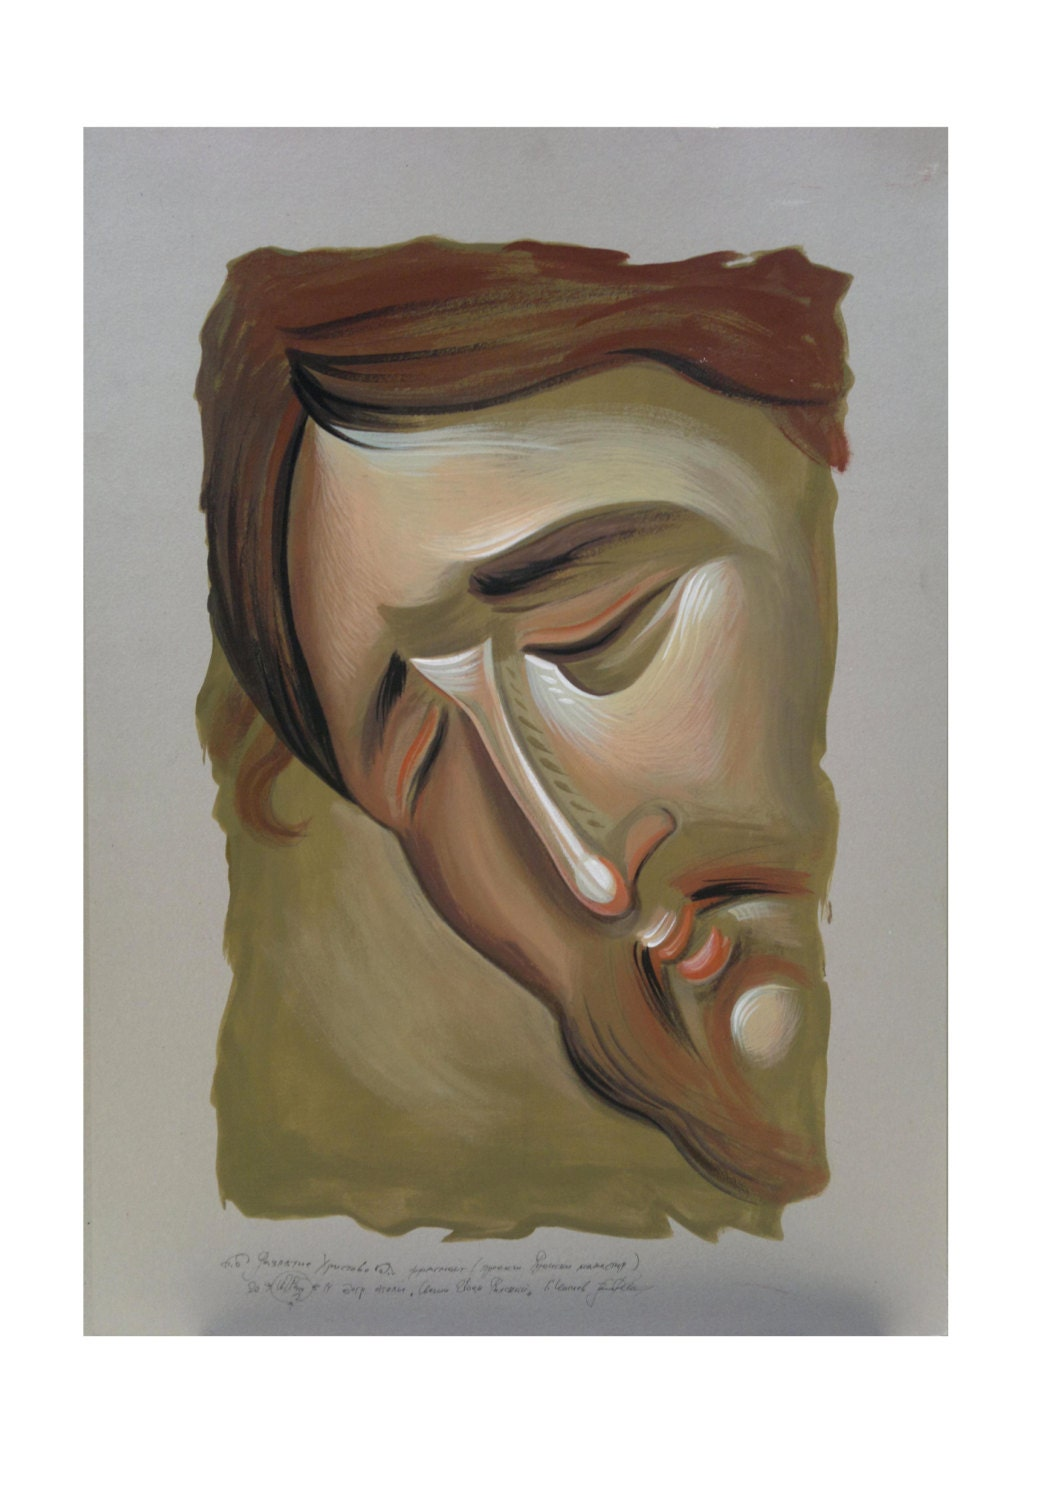 Jesus Christ Religious Wall Decor Cardboard Art Christian Home Gift